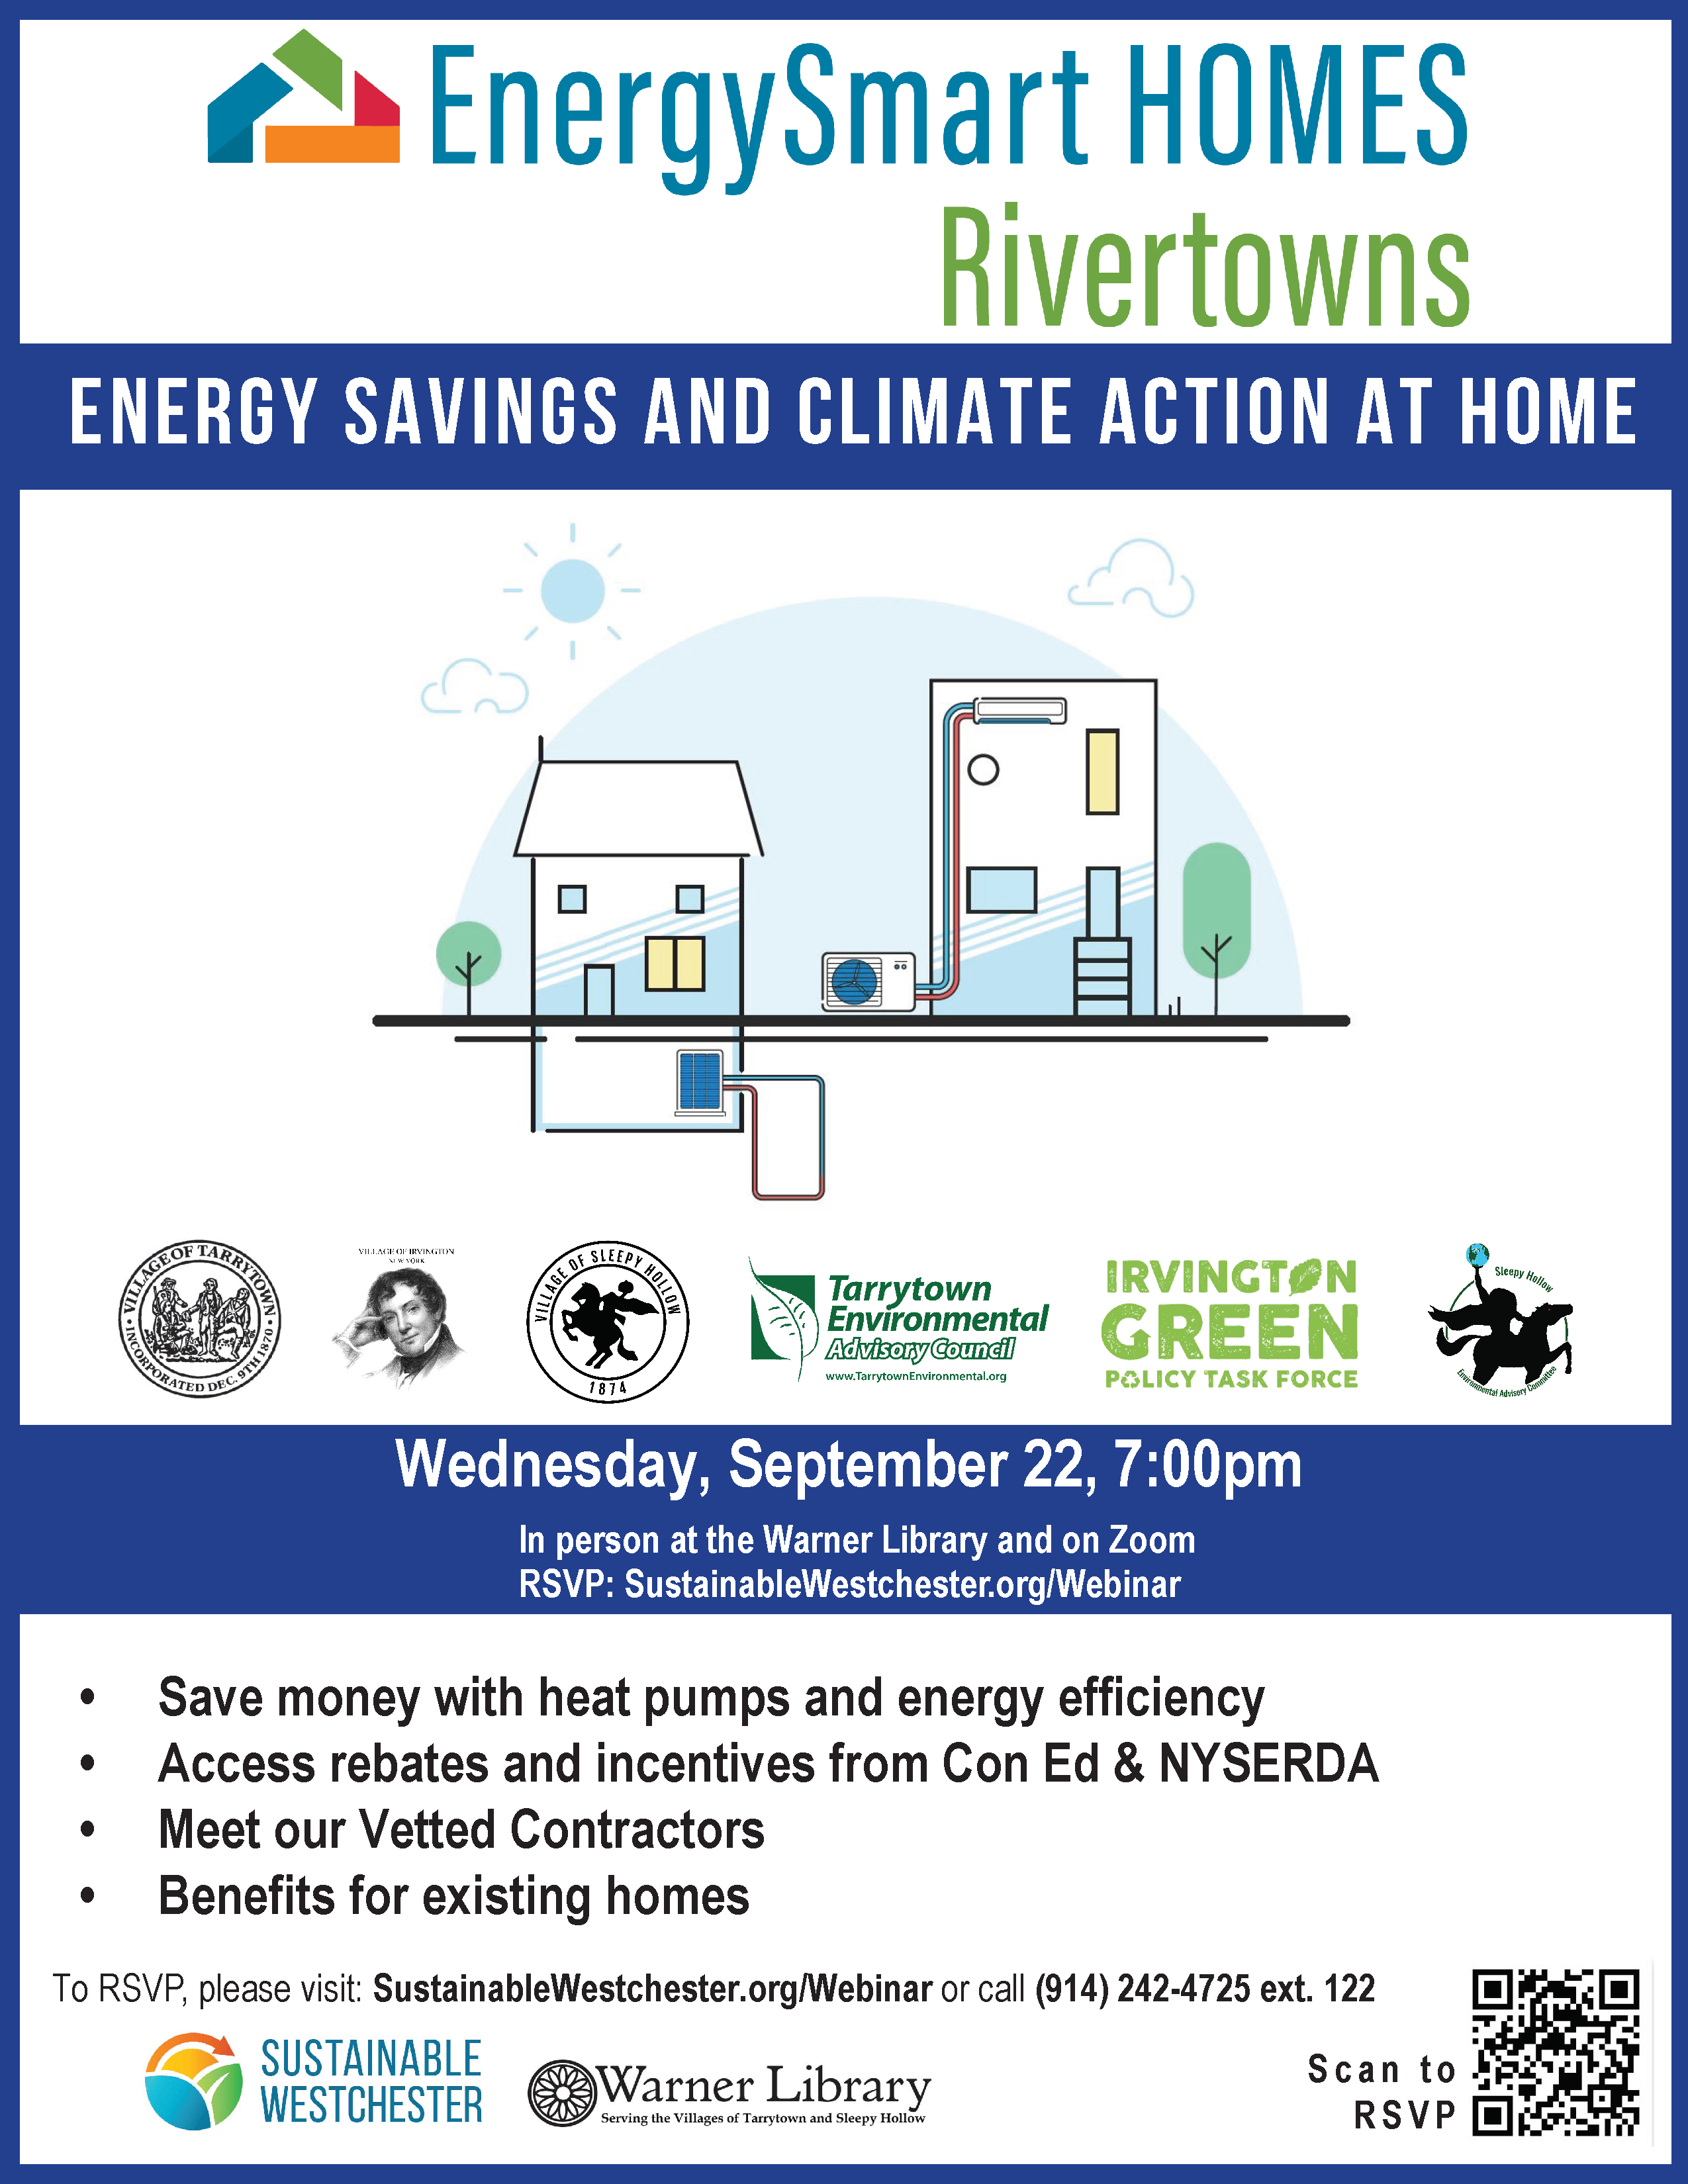 Energy Savings and Climate Action at Home Wednesday, September 22 7:00pm-8:00pm, Q&A 8:00pm-8:30pm